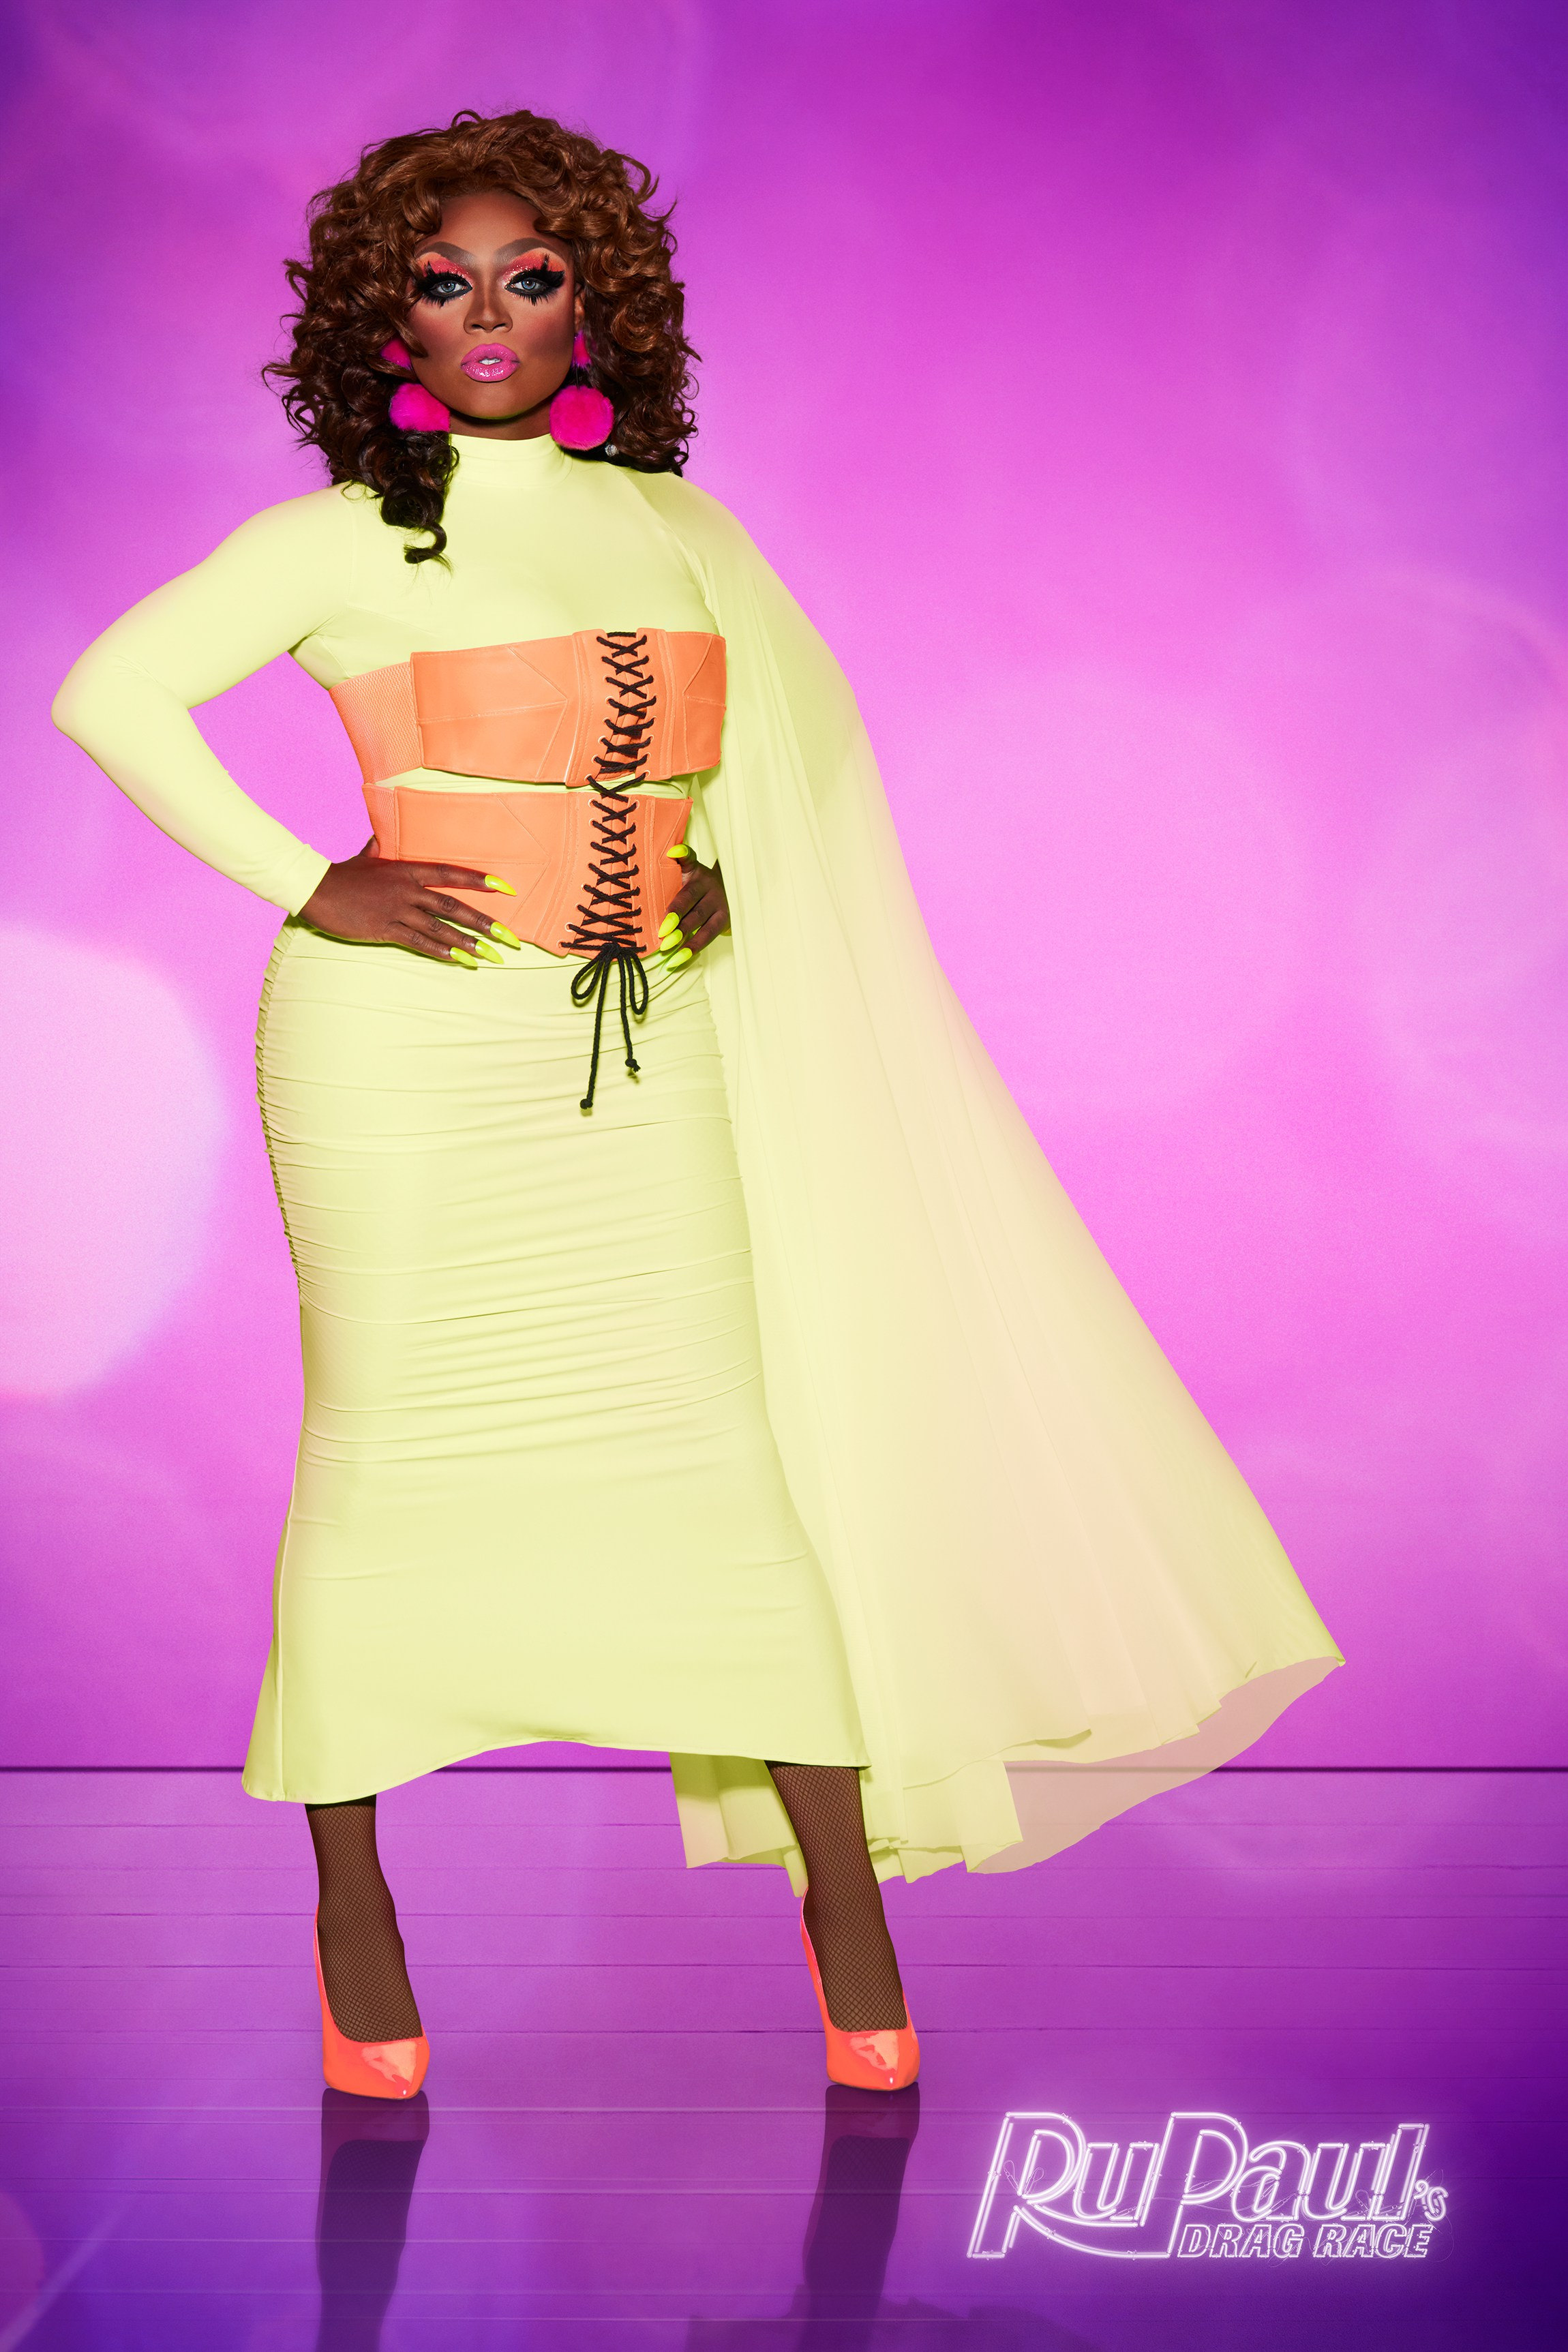 Mayhem Miller | RuPaul's Drag Race Season 10 Cast | Credit: VH1